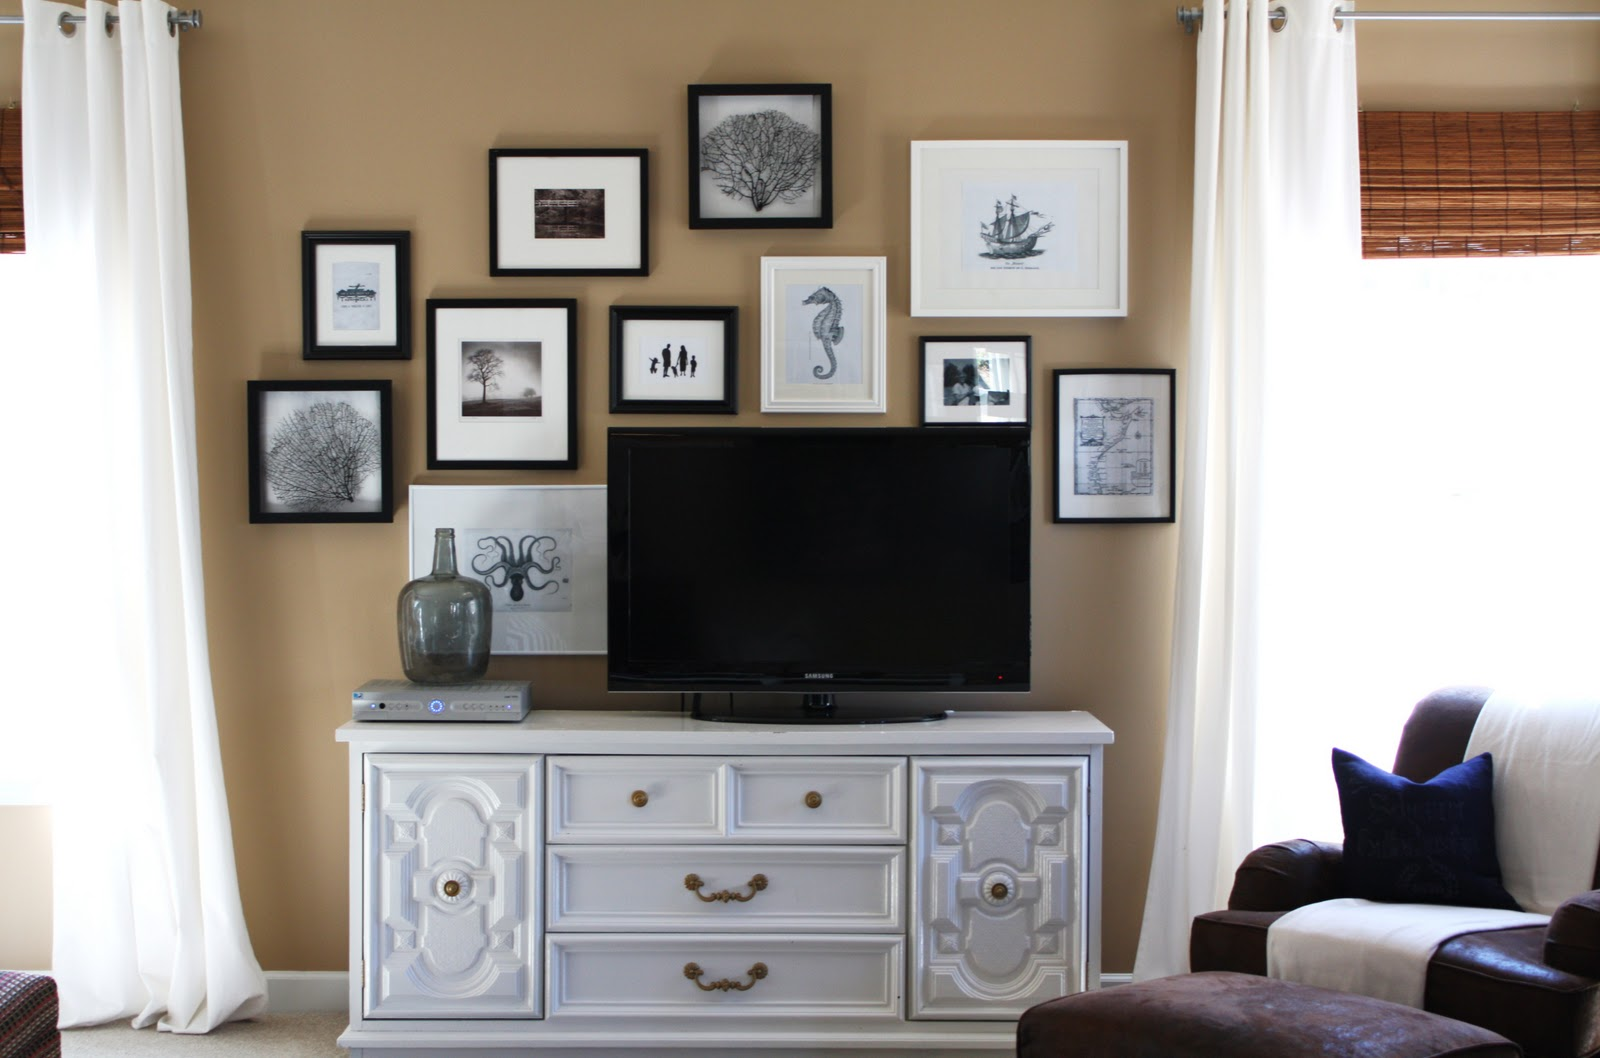 Wall Decor Behind Flat Screen Tv : Lisa mende design how to decorate around a flat screen tv